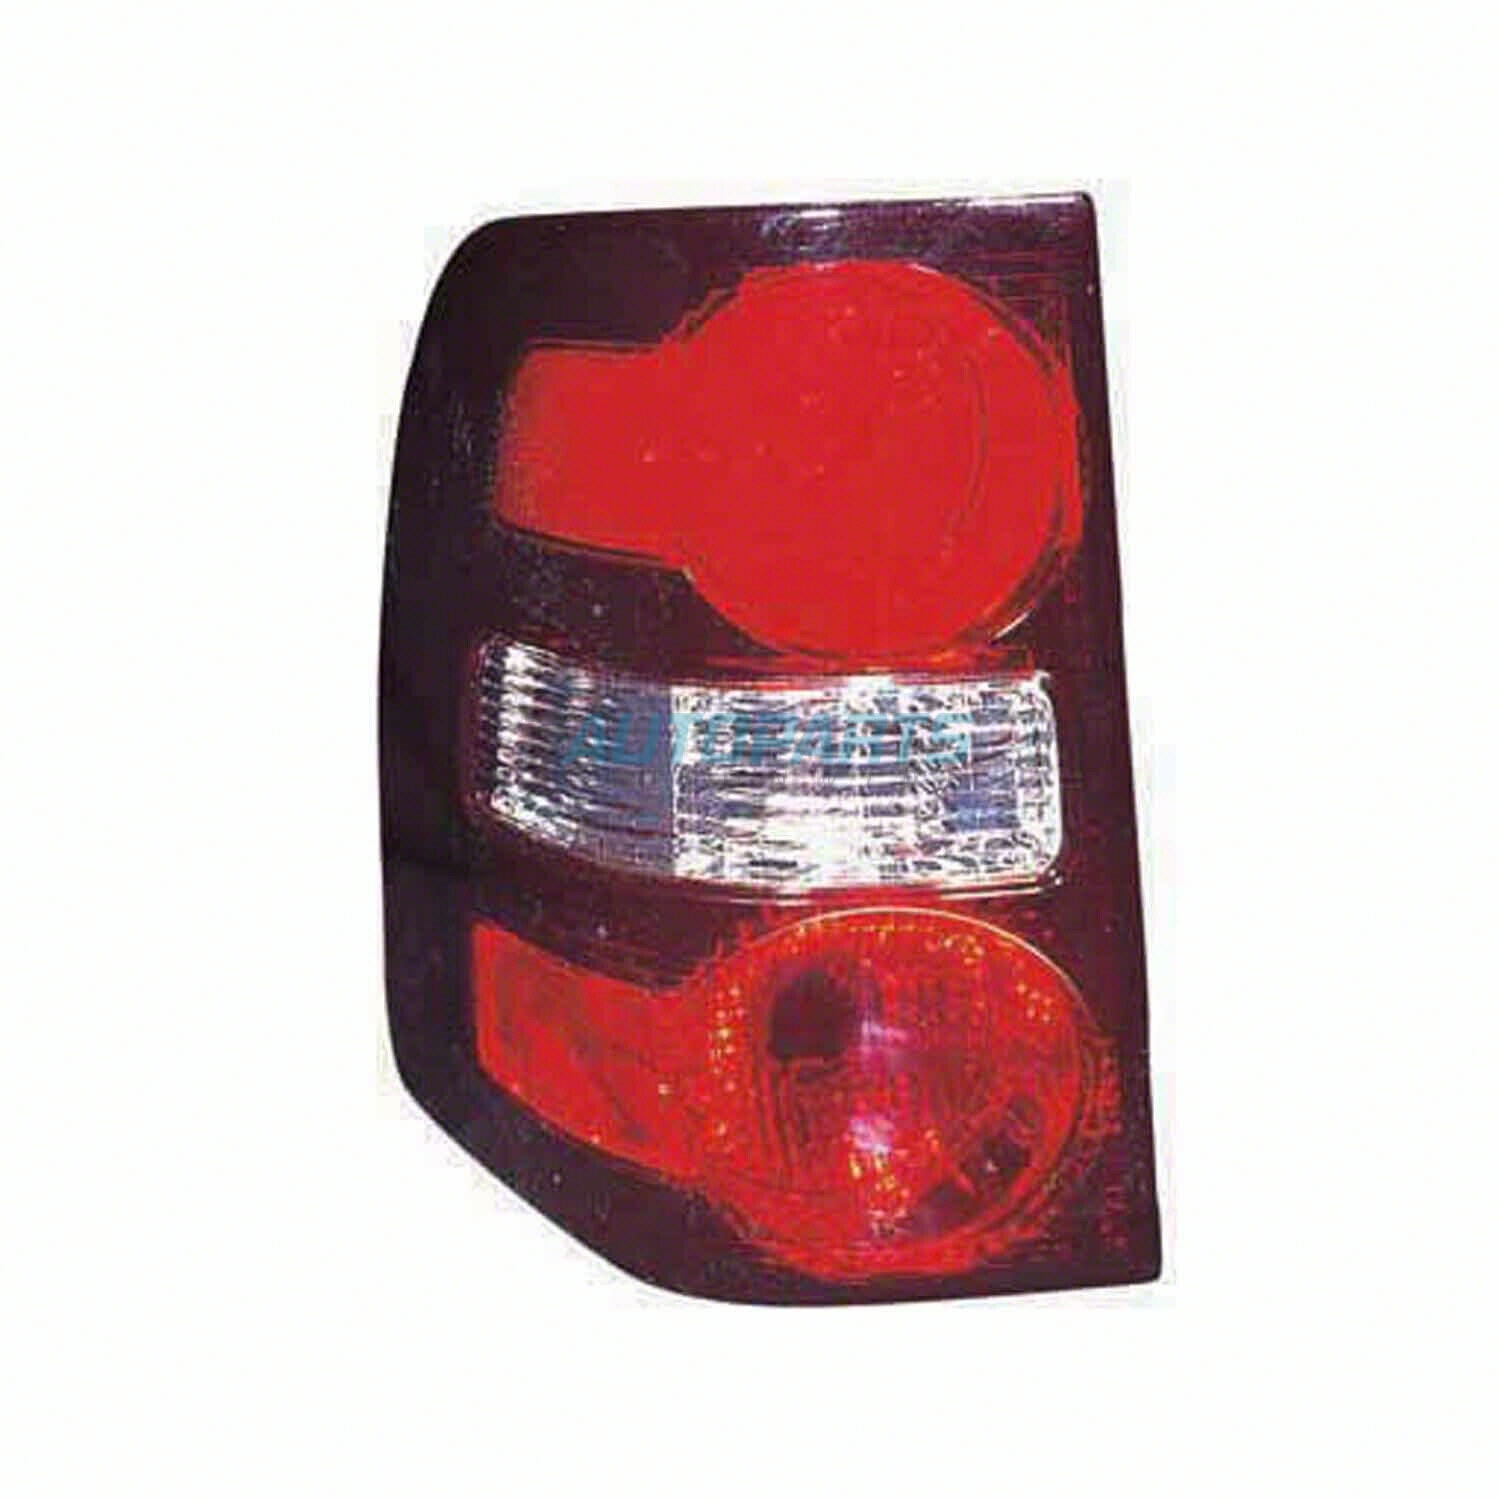 CAPA Passenger Side Tail Light Lens and Housing Compatible with 2006-2010 Ford Explorer